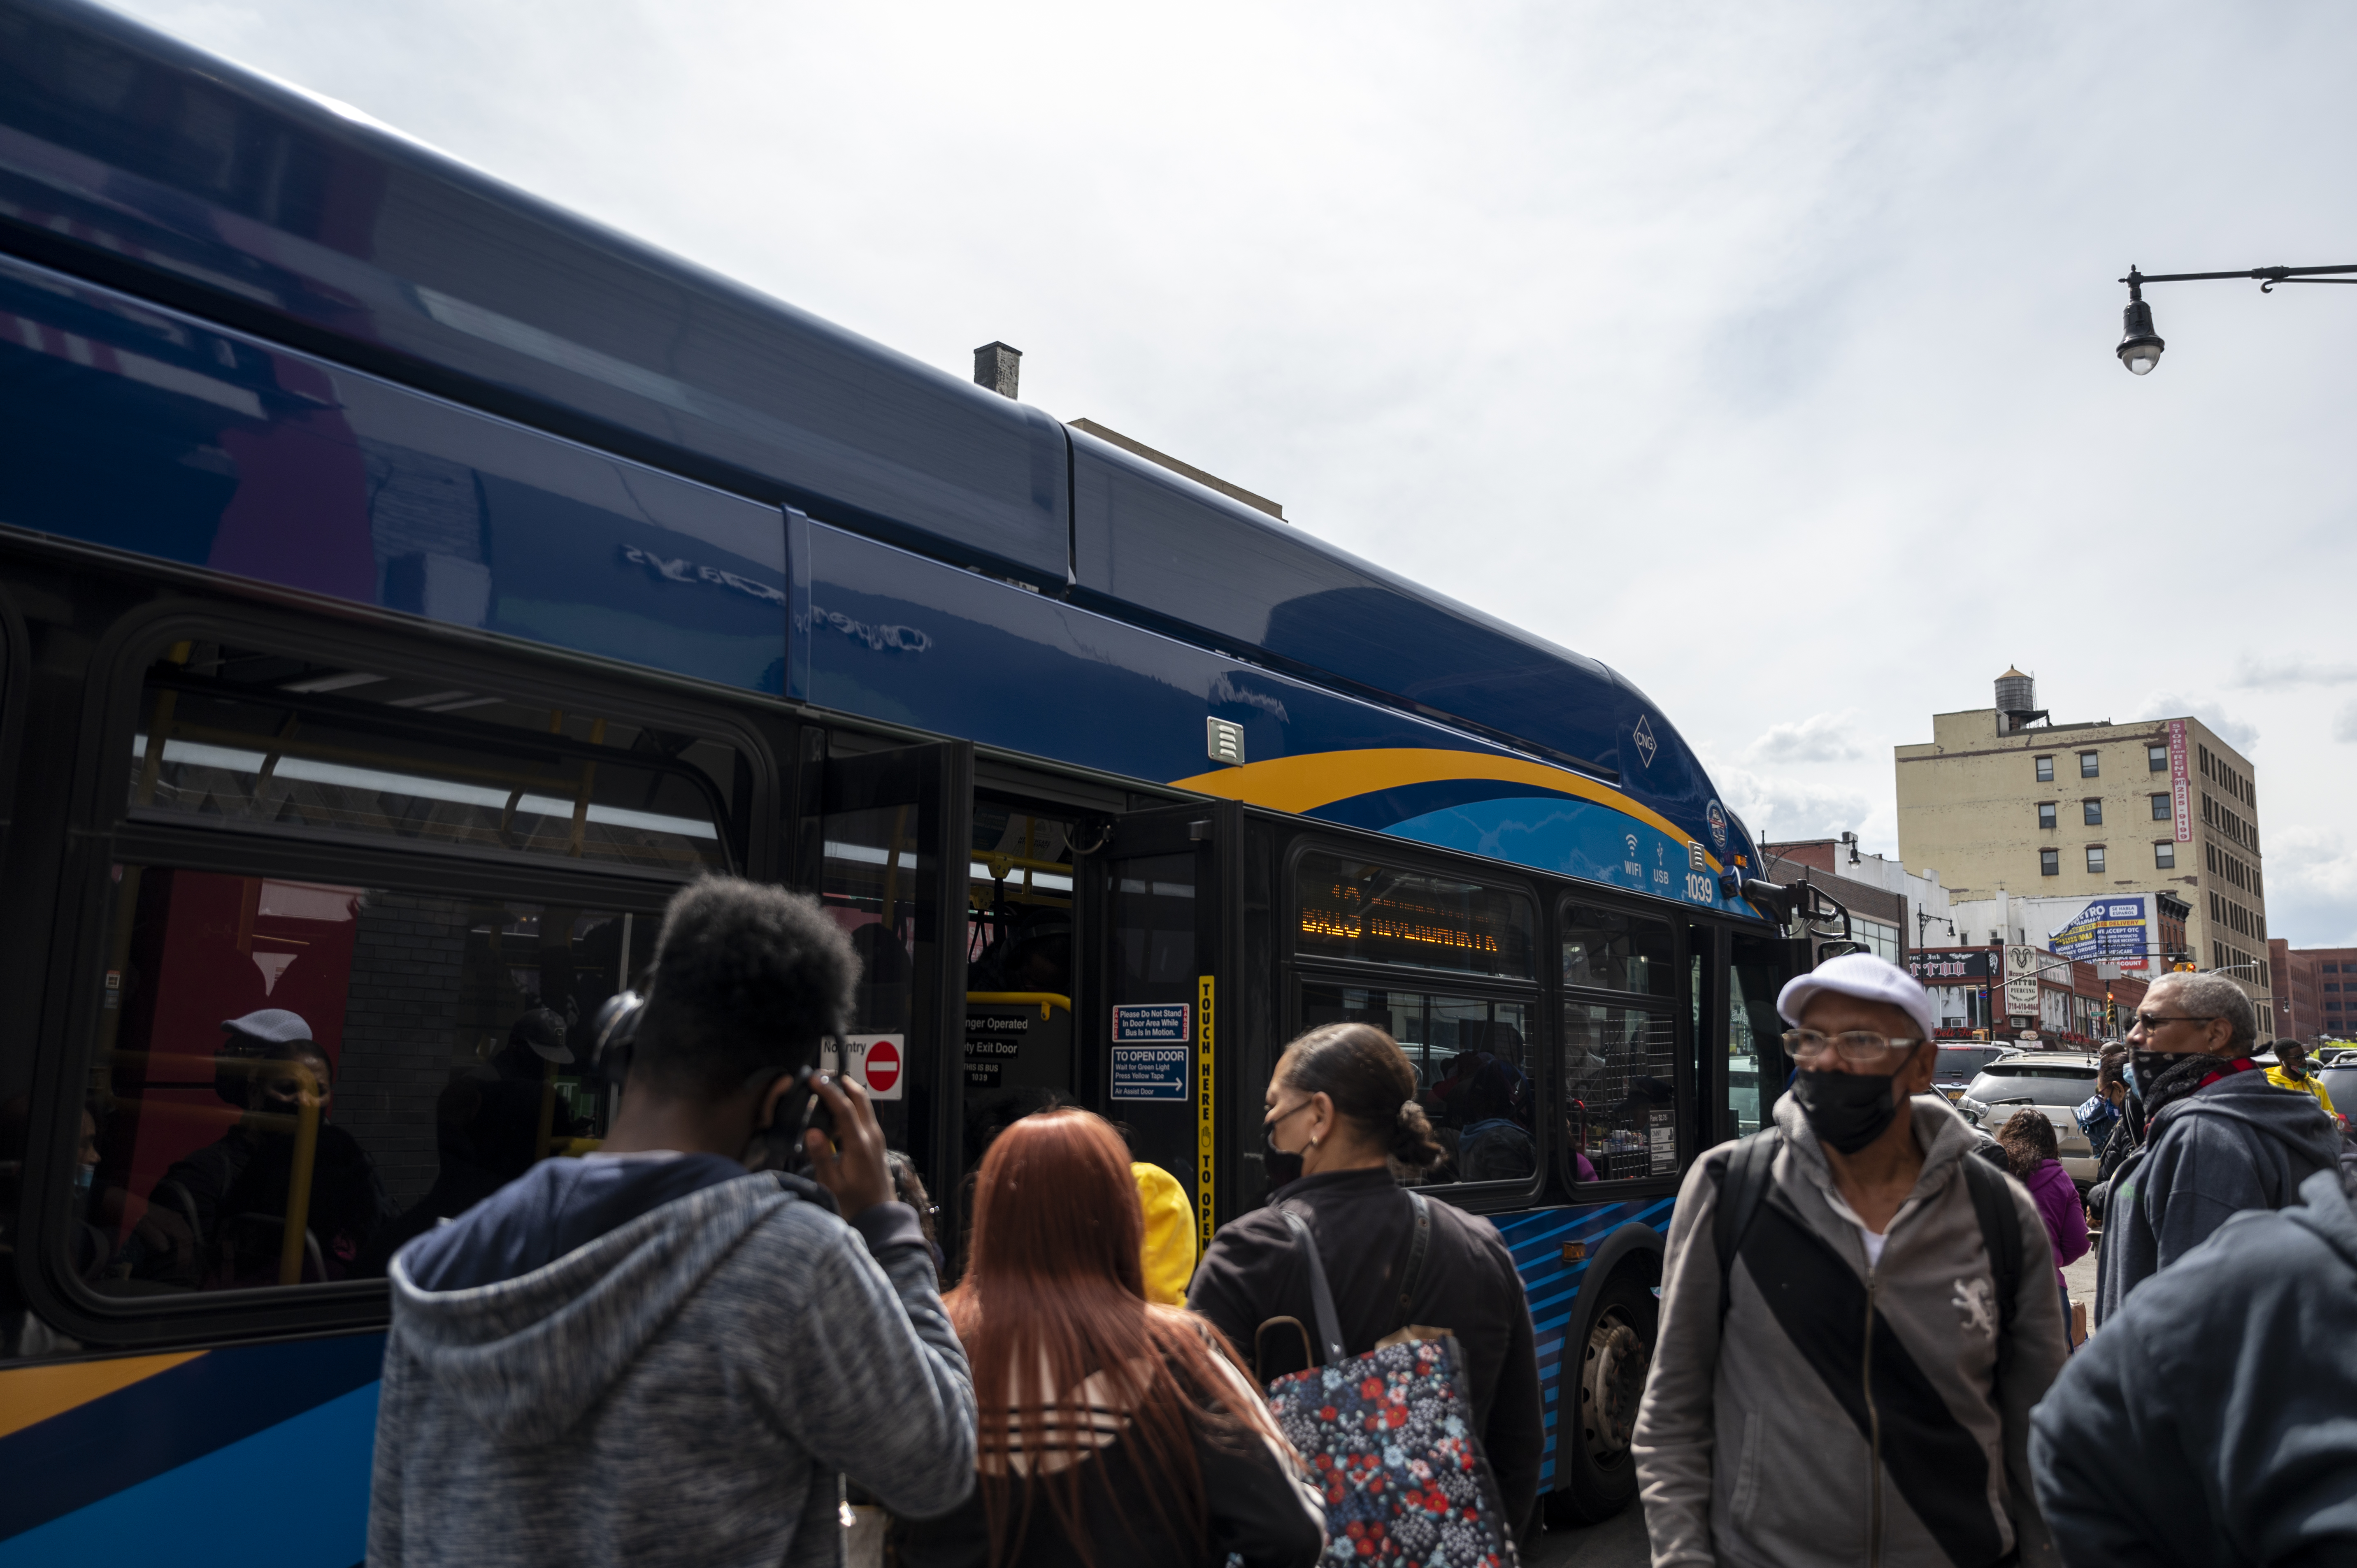 A crowd of commuters waiting to board the bus at The Hub on Friday, May. 7, 2021.